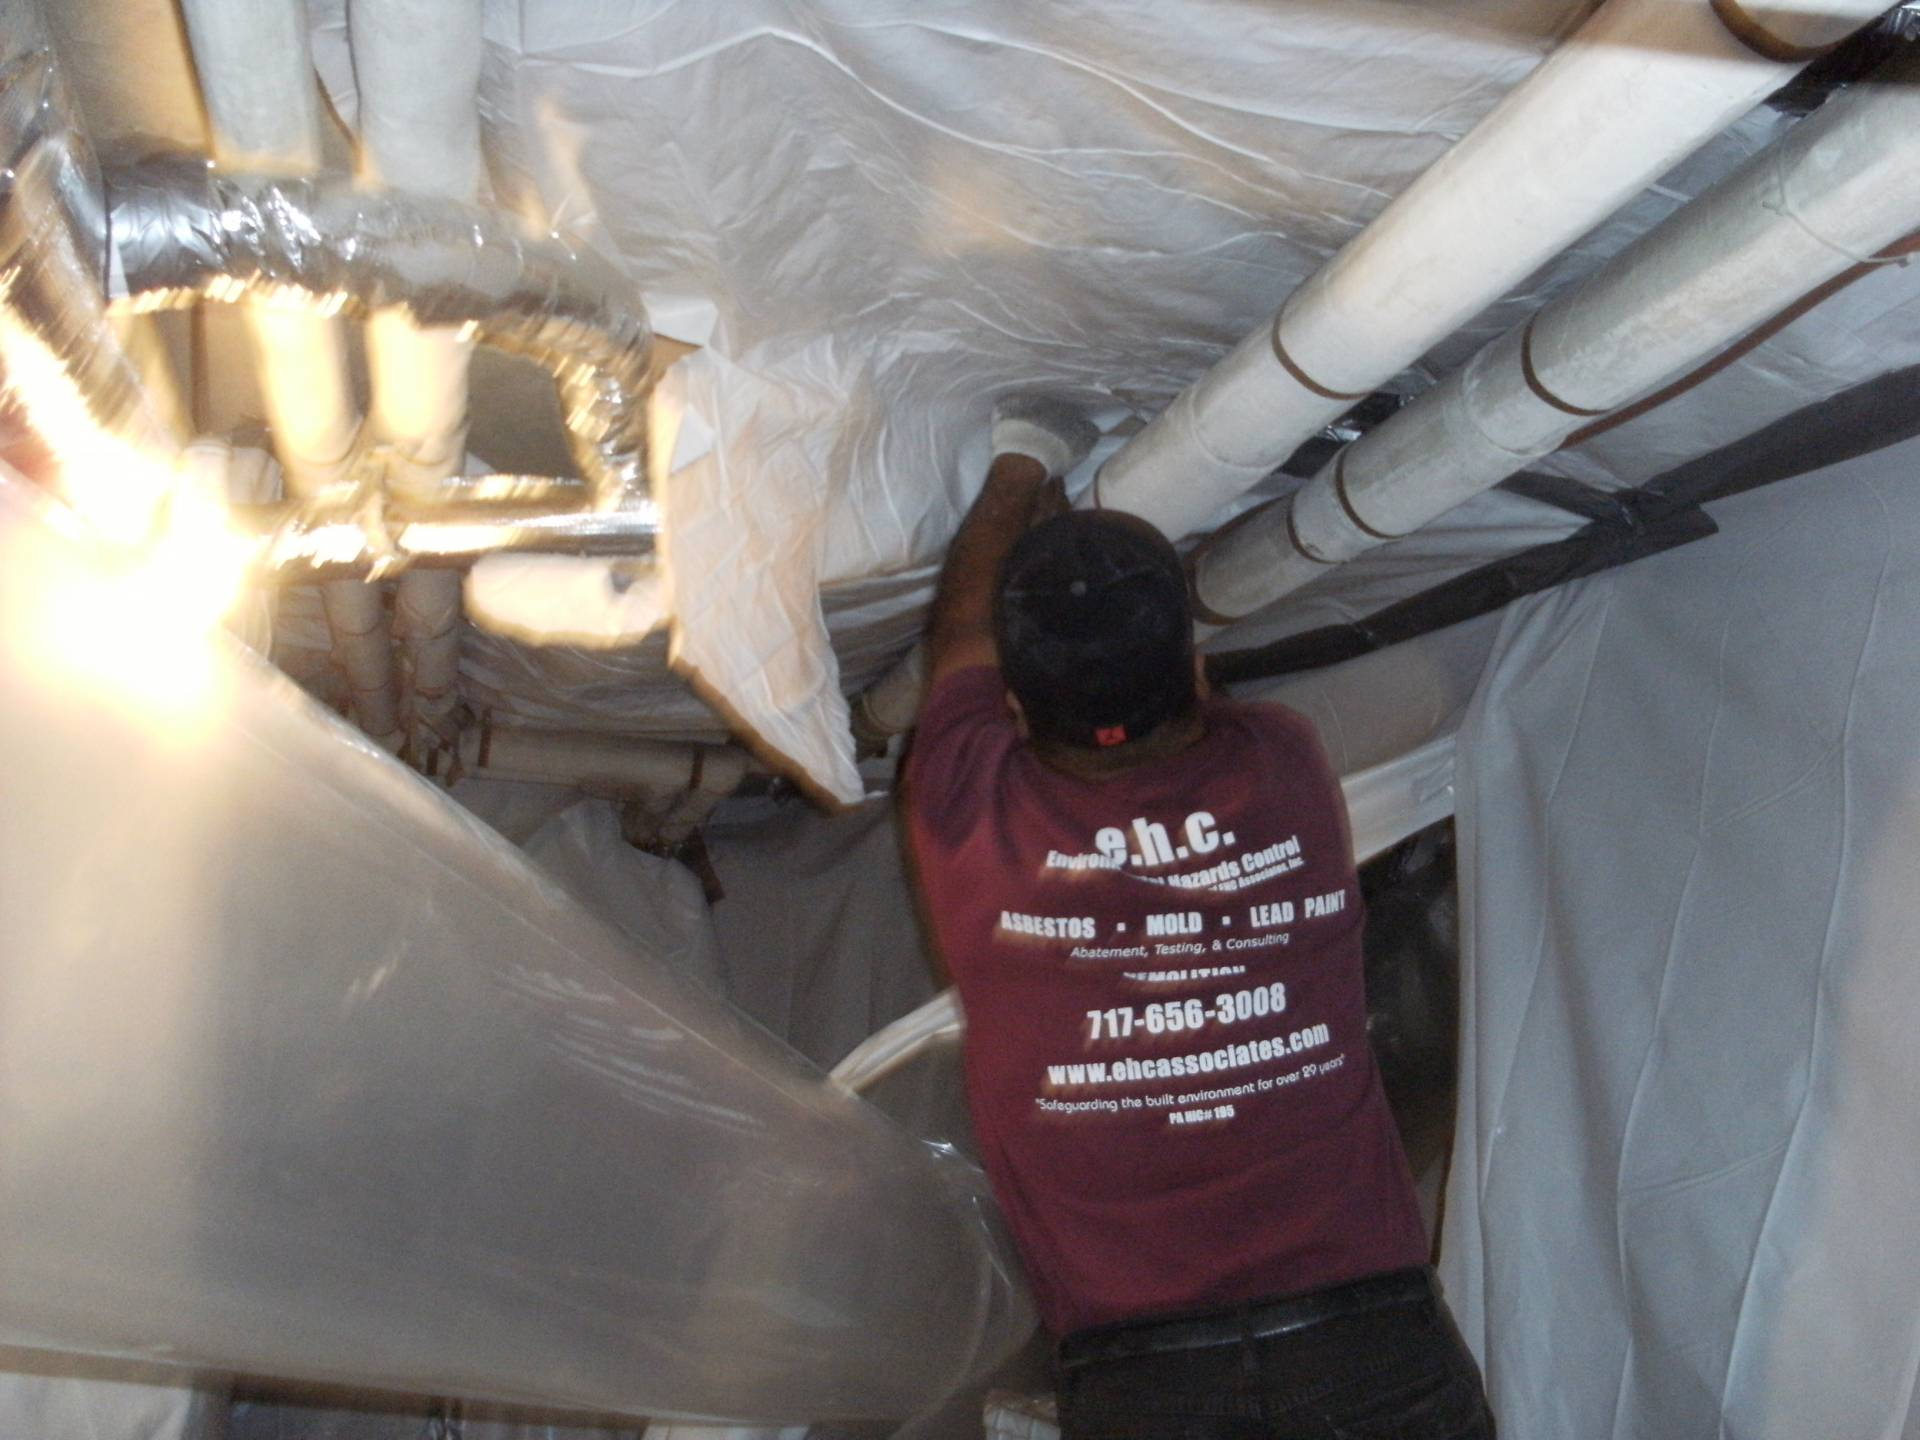 environmental hazards control working on a duct system